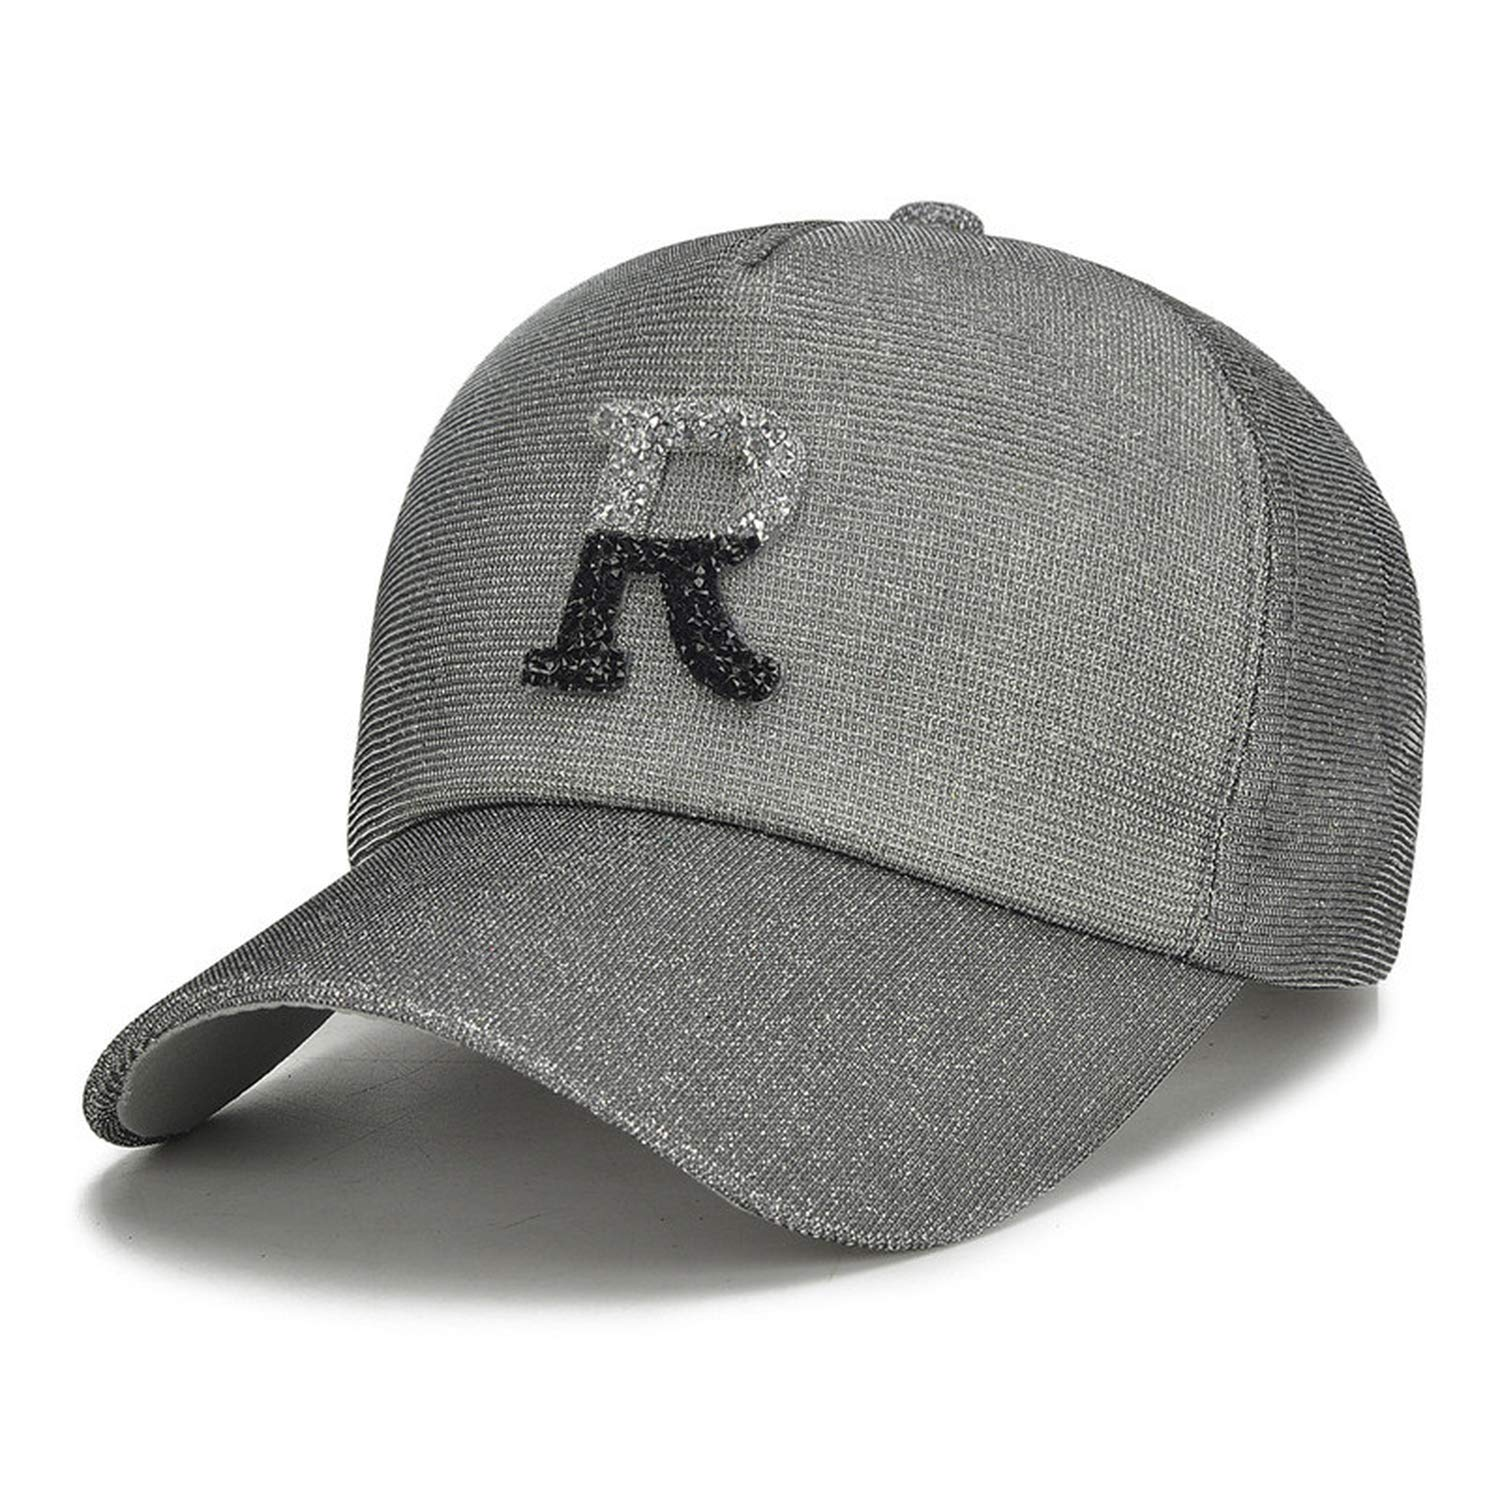 4f71e9ada6e4e Women Hats and Vintage Hats Chance The Rapper Snapback Ratchet Man Black  Luxury Casual hat at Amazon Women s Clothing store